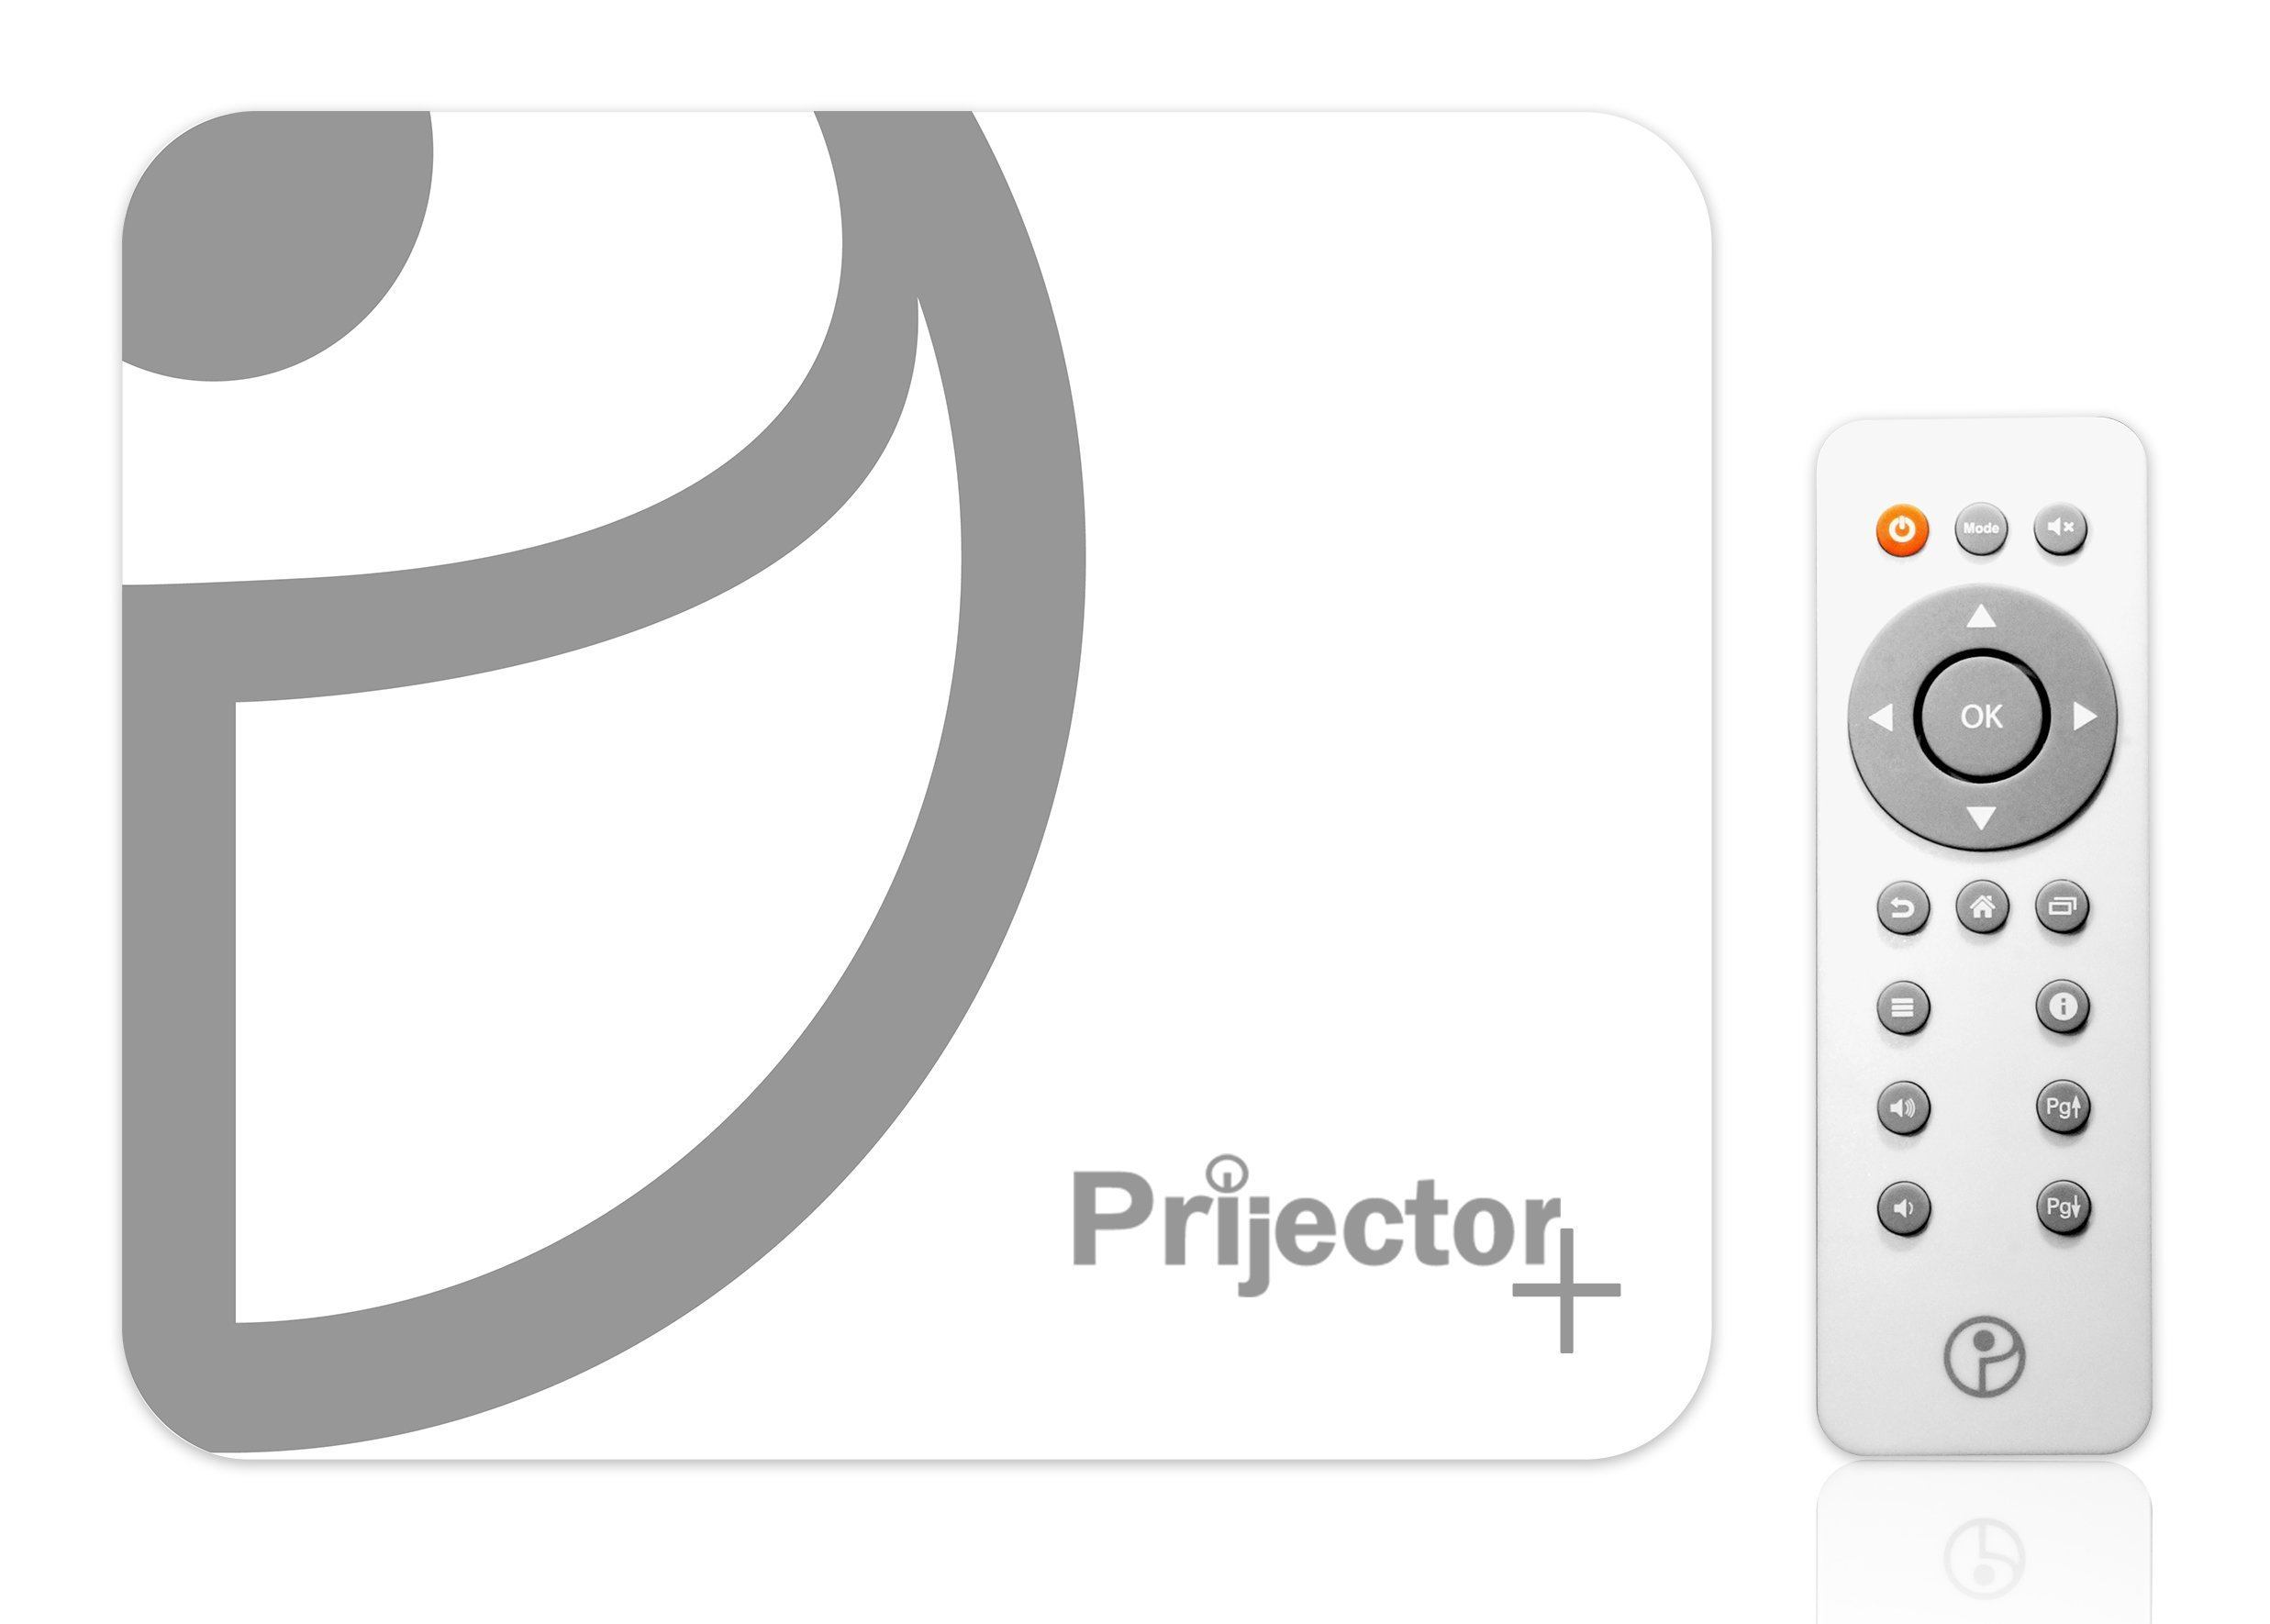 Prijector- Wireless HDMI Full Screen Mirroring From any Device (In 3 Seconds) / Runs Video Conferencing Apps / Guest Internet Access